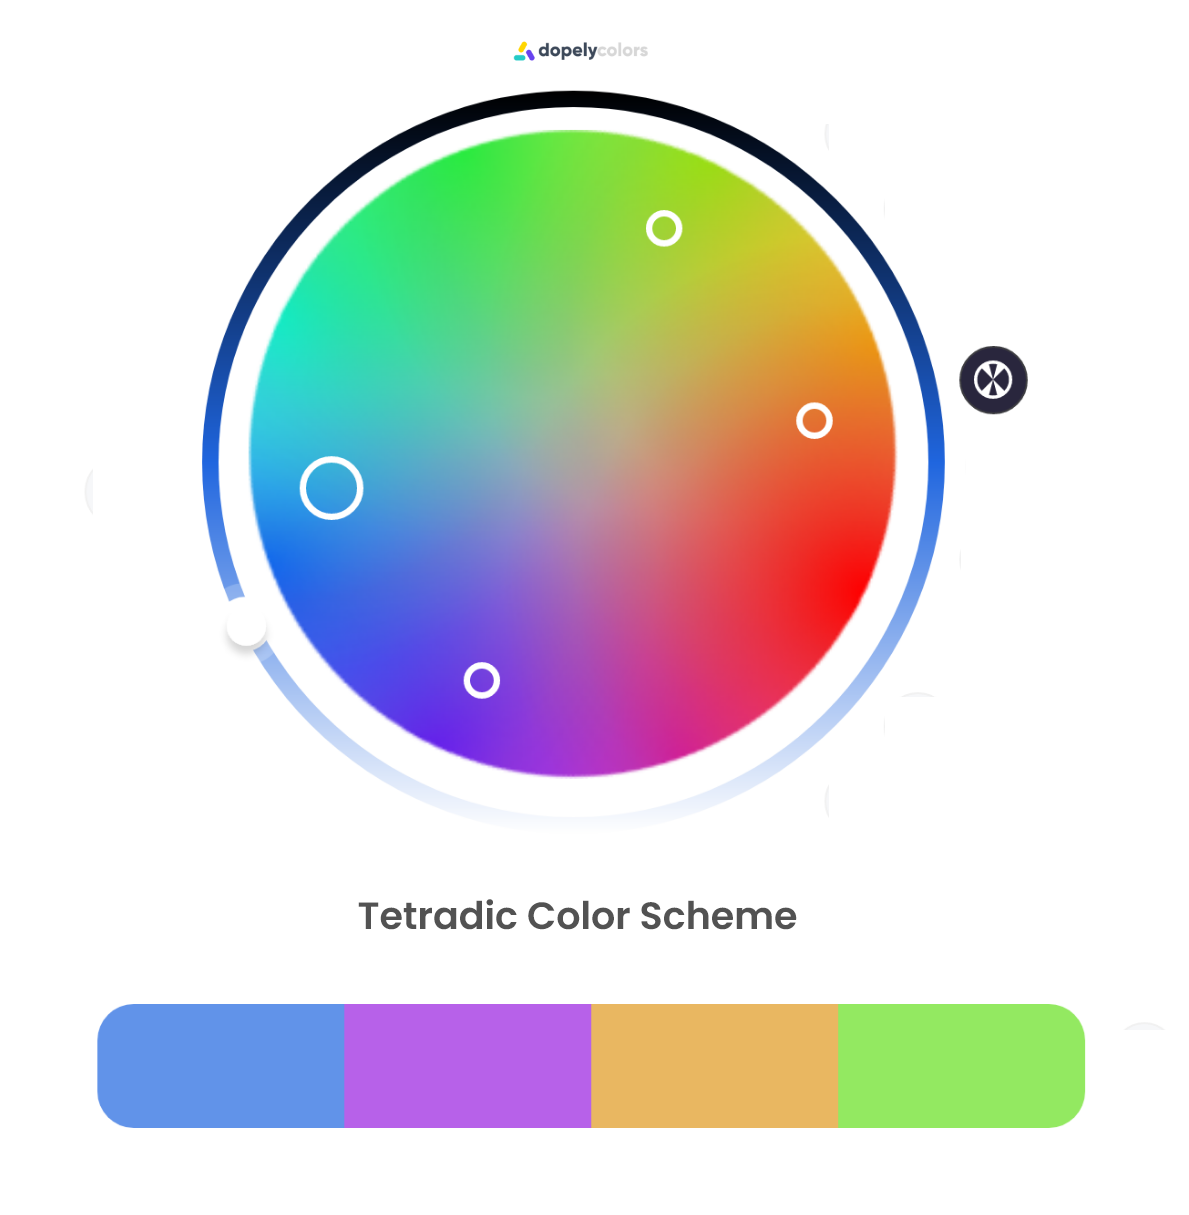 A Tetradic color scheme should be composed of two sets of complementary colors. they are vibrant and contrasted while having some harmonies.